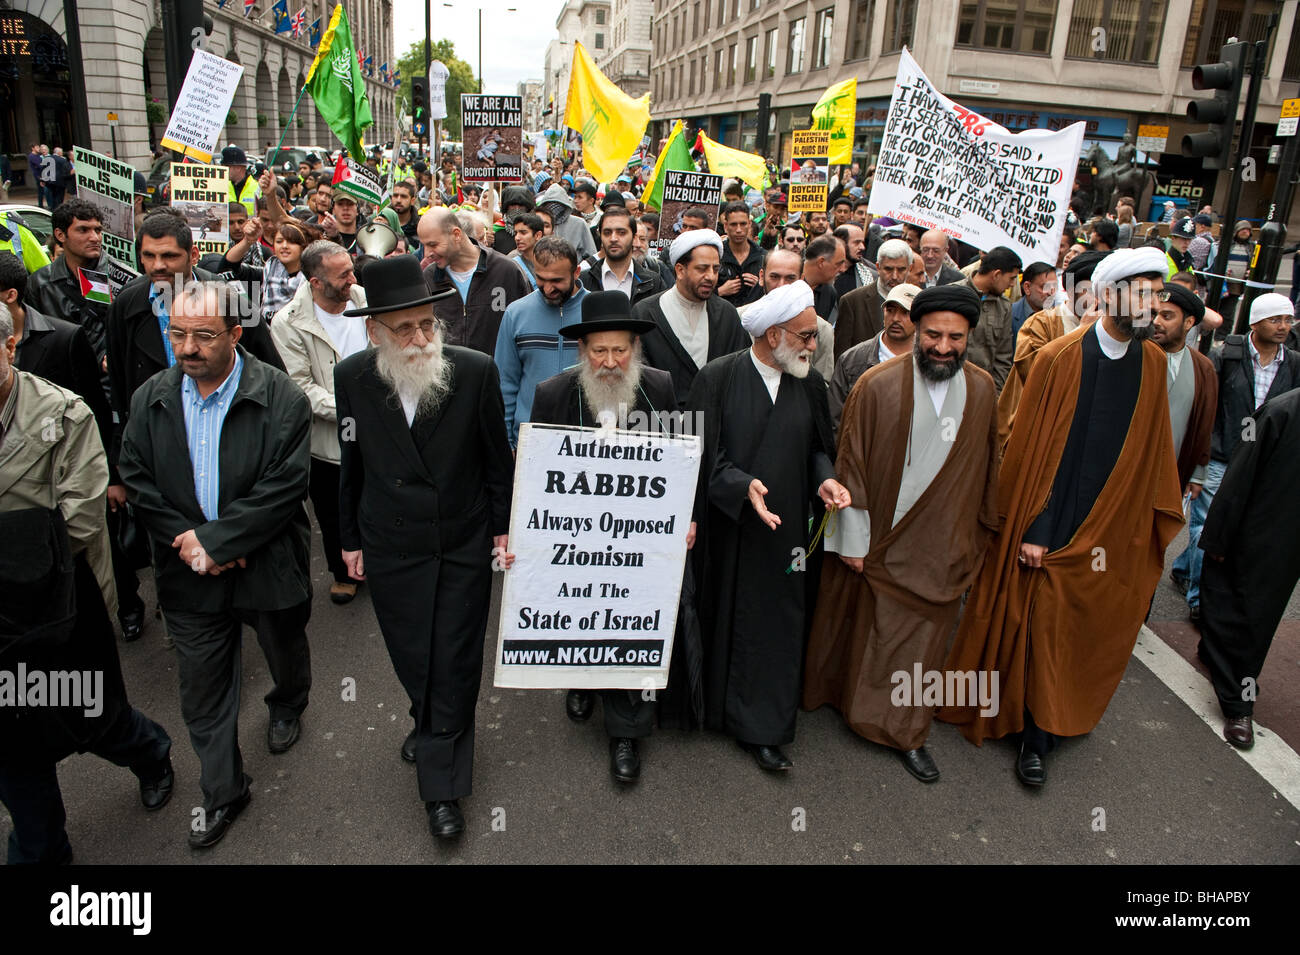 Rabbis and Islamic clerics marching together at the Annual Al Quds Demonstration in support of the Palestinian people. - Stock Image